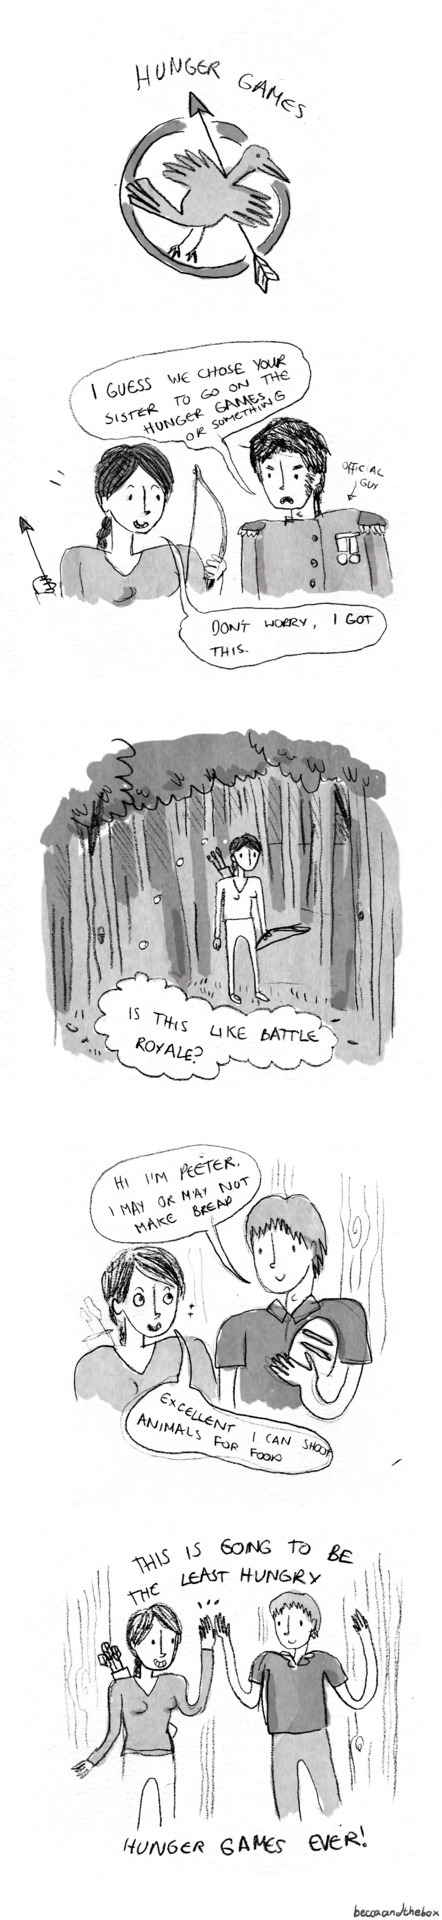 This is a comic I wrote about The Hunger Games without ever actually having read The Hunger Games. I'm sorry everyone.